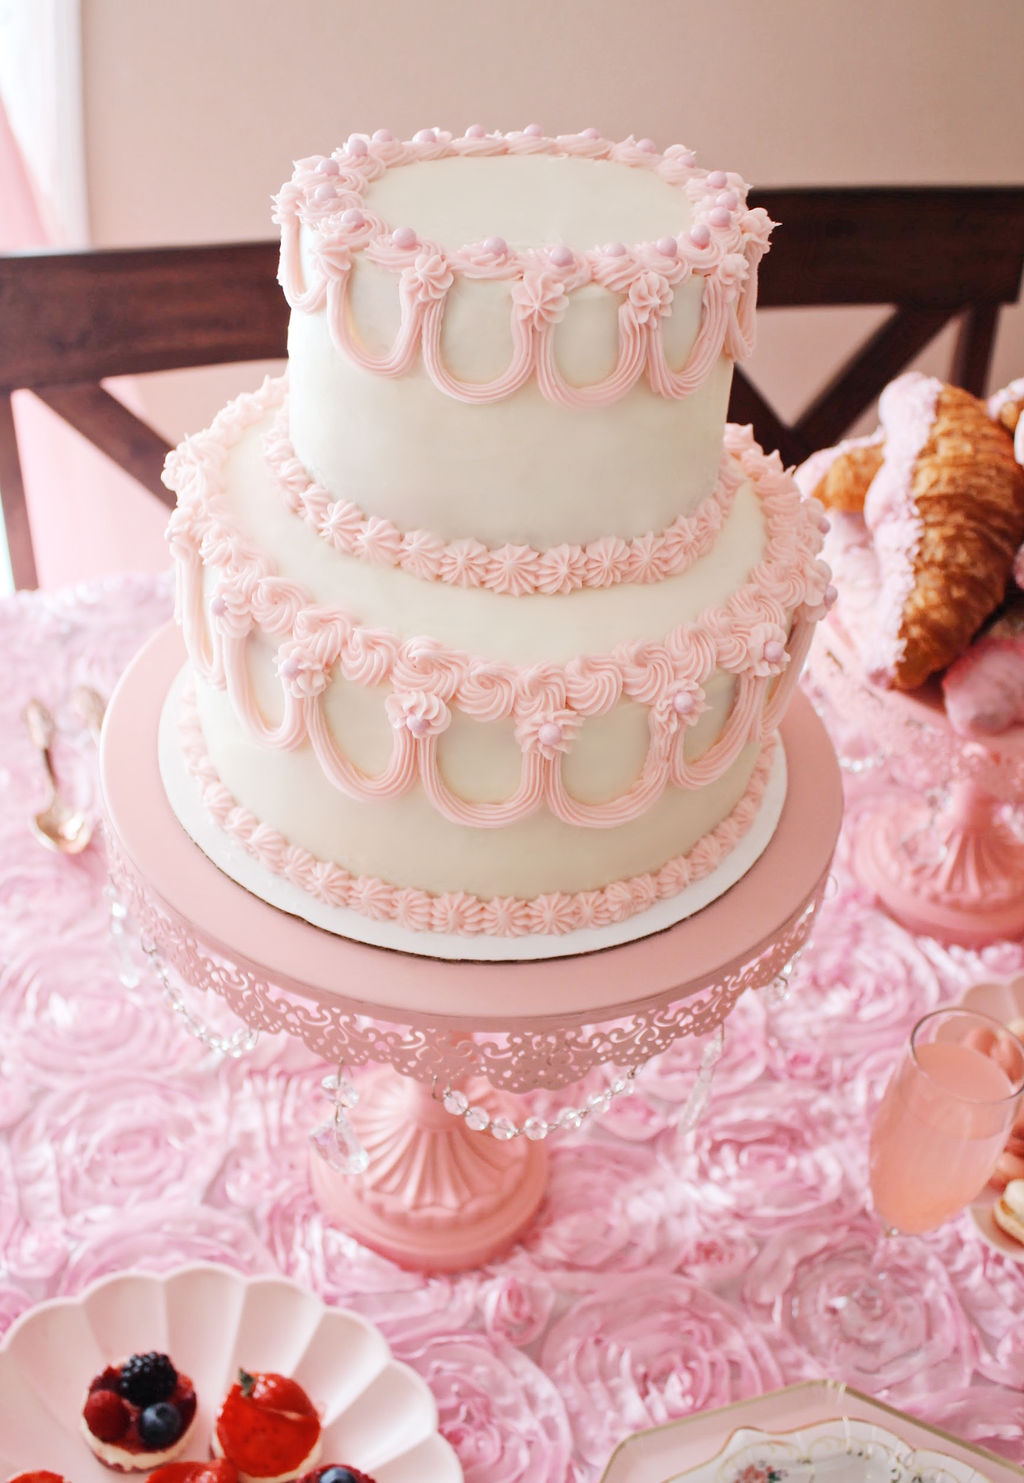 Vintage piped Galentine's cake from 3rd & Luxe.